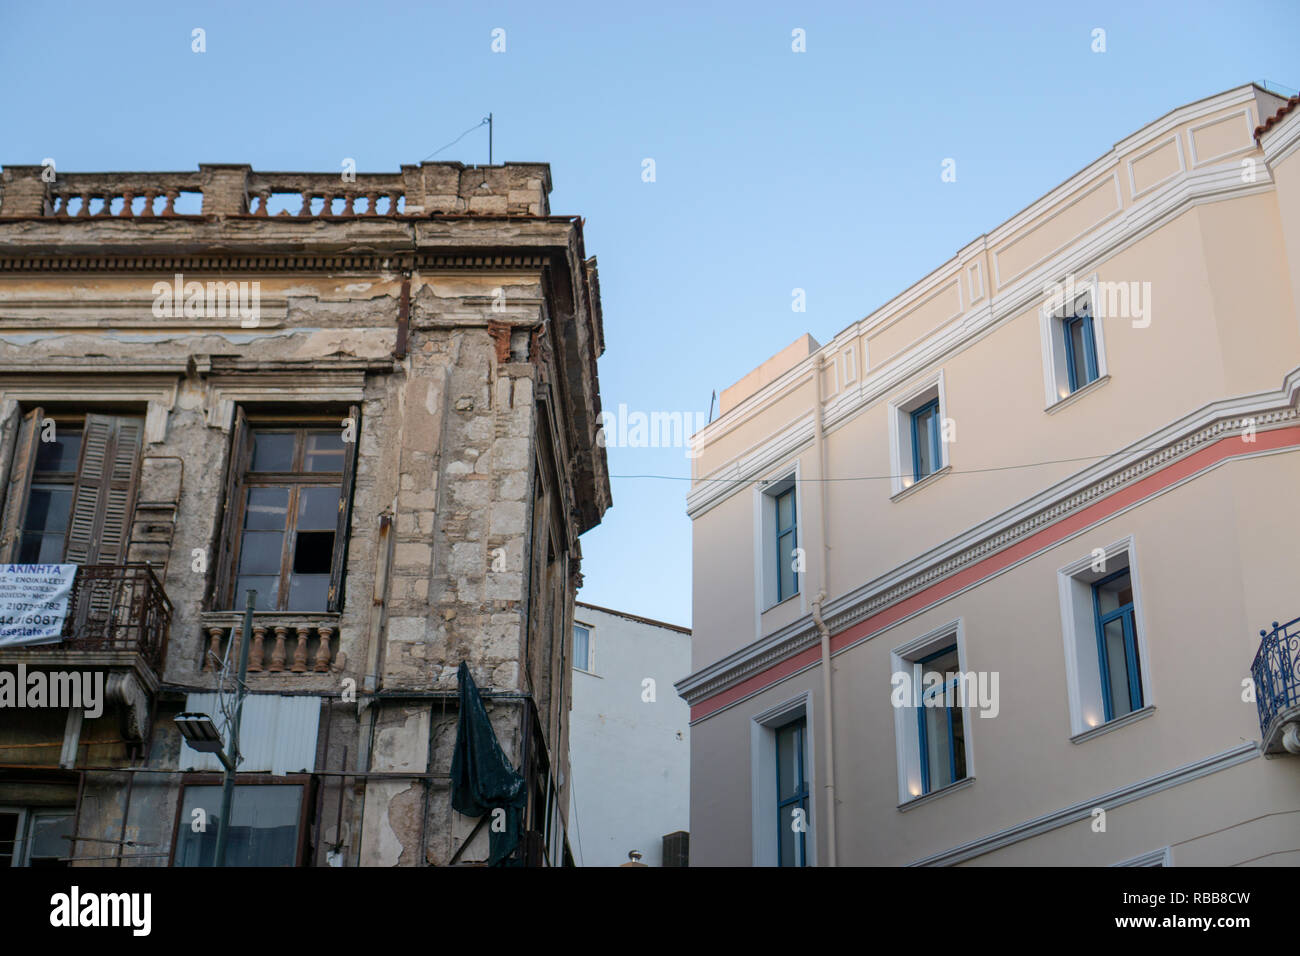 It was really sad and upsetting to see those beautiful examples of Greek historical heritage abandoned and waiting for destruction. - Stock Image